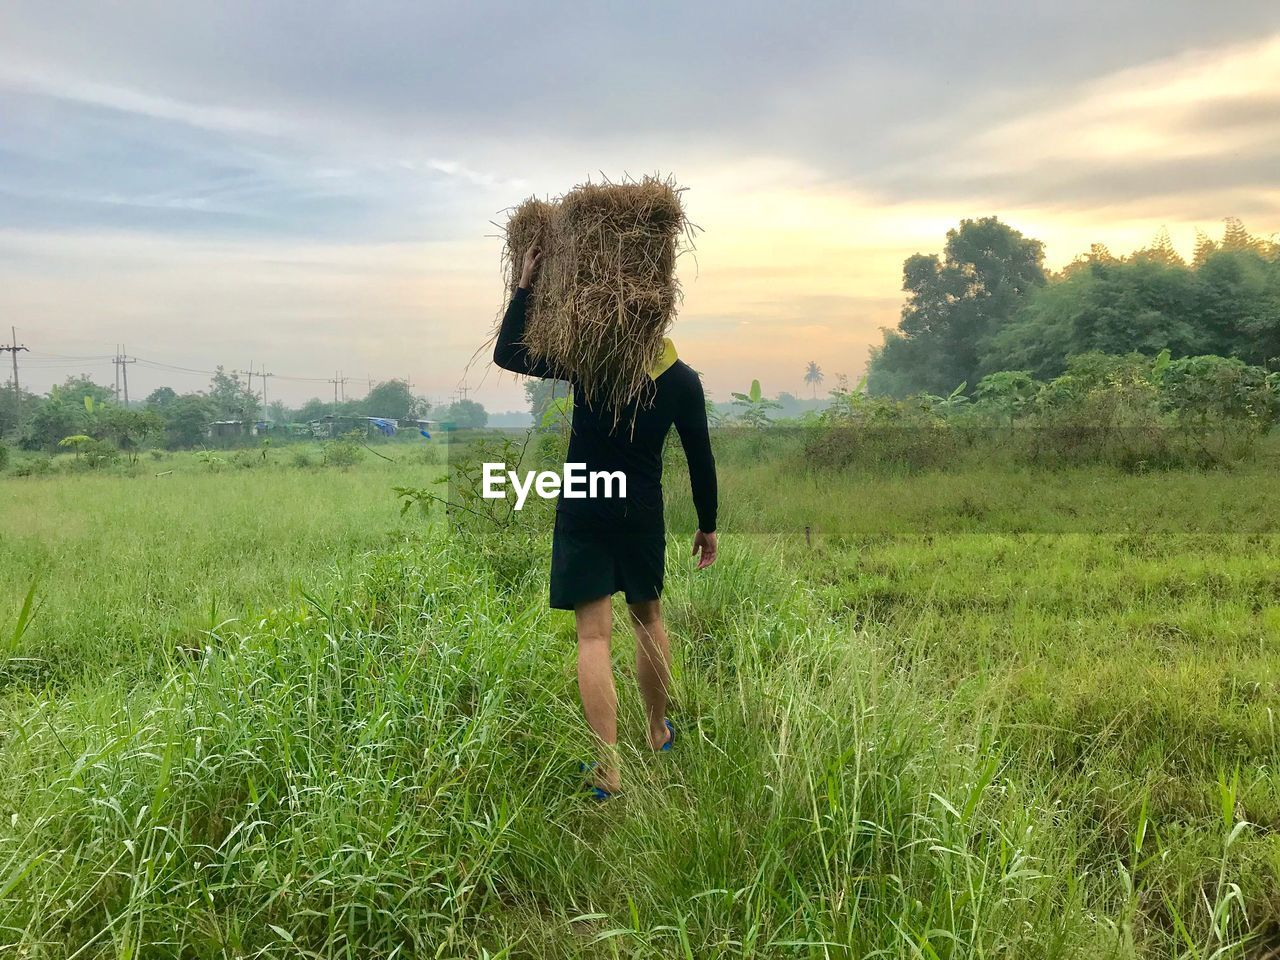 grass, land, plant, field, sky, real people, one person, green color, cloud - sky, landscape, nature, growth, lifestyles, environment, beauty in nature, adult, walking, rural scene, leisure activity, hairstyle, outdoors